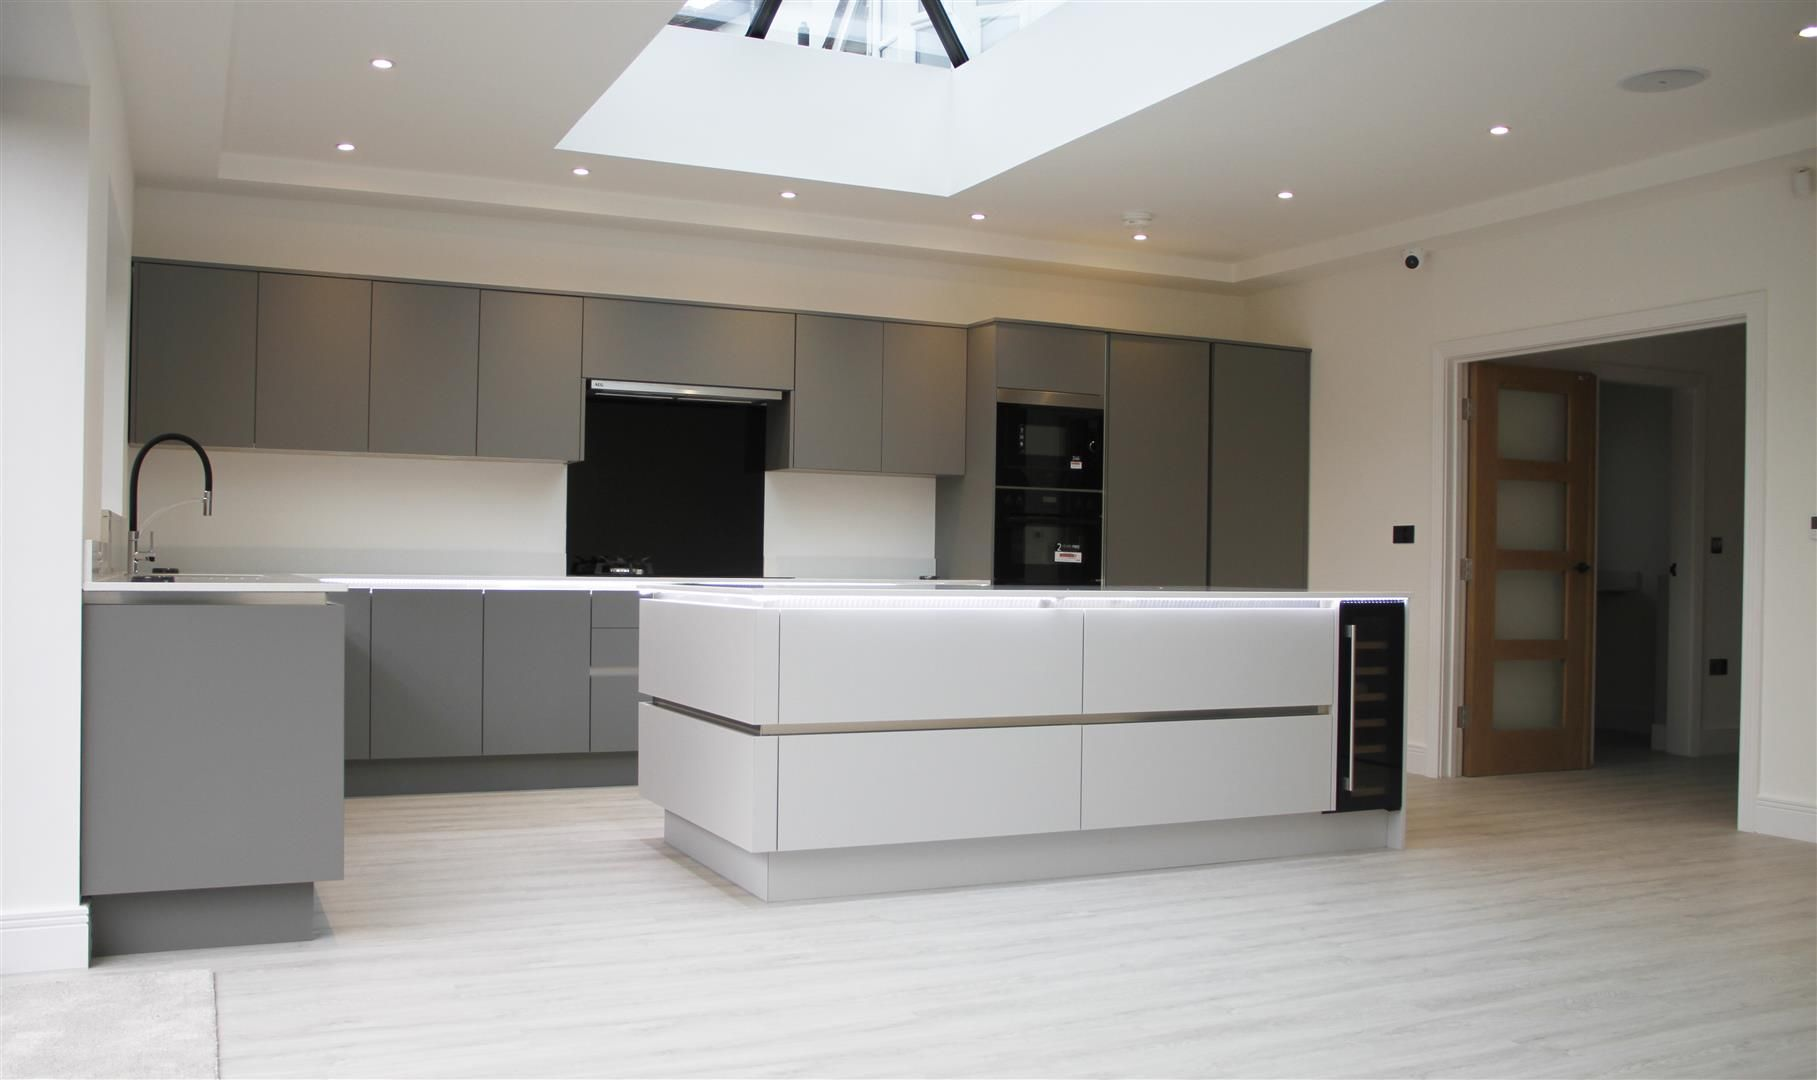 5 bed detached for sale in Hagley  - Property Image 2